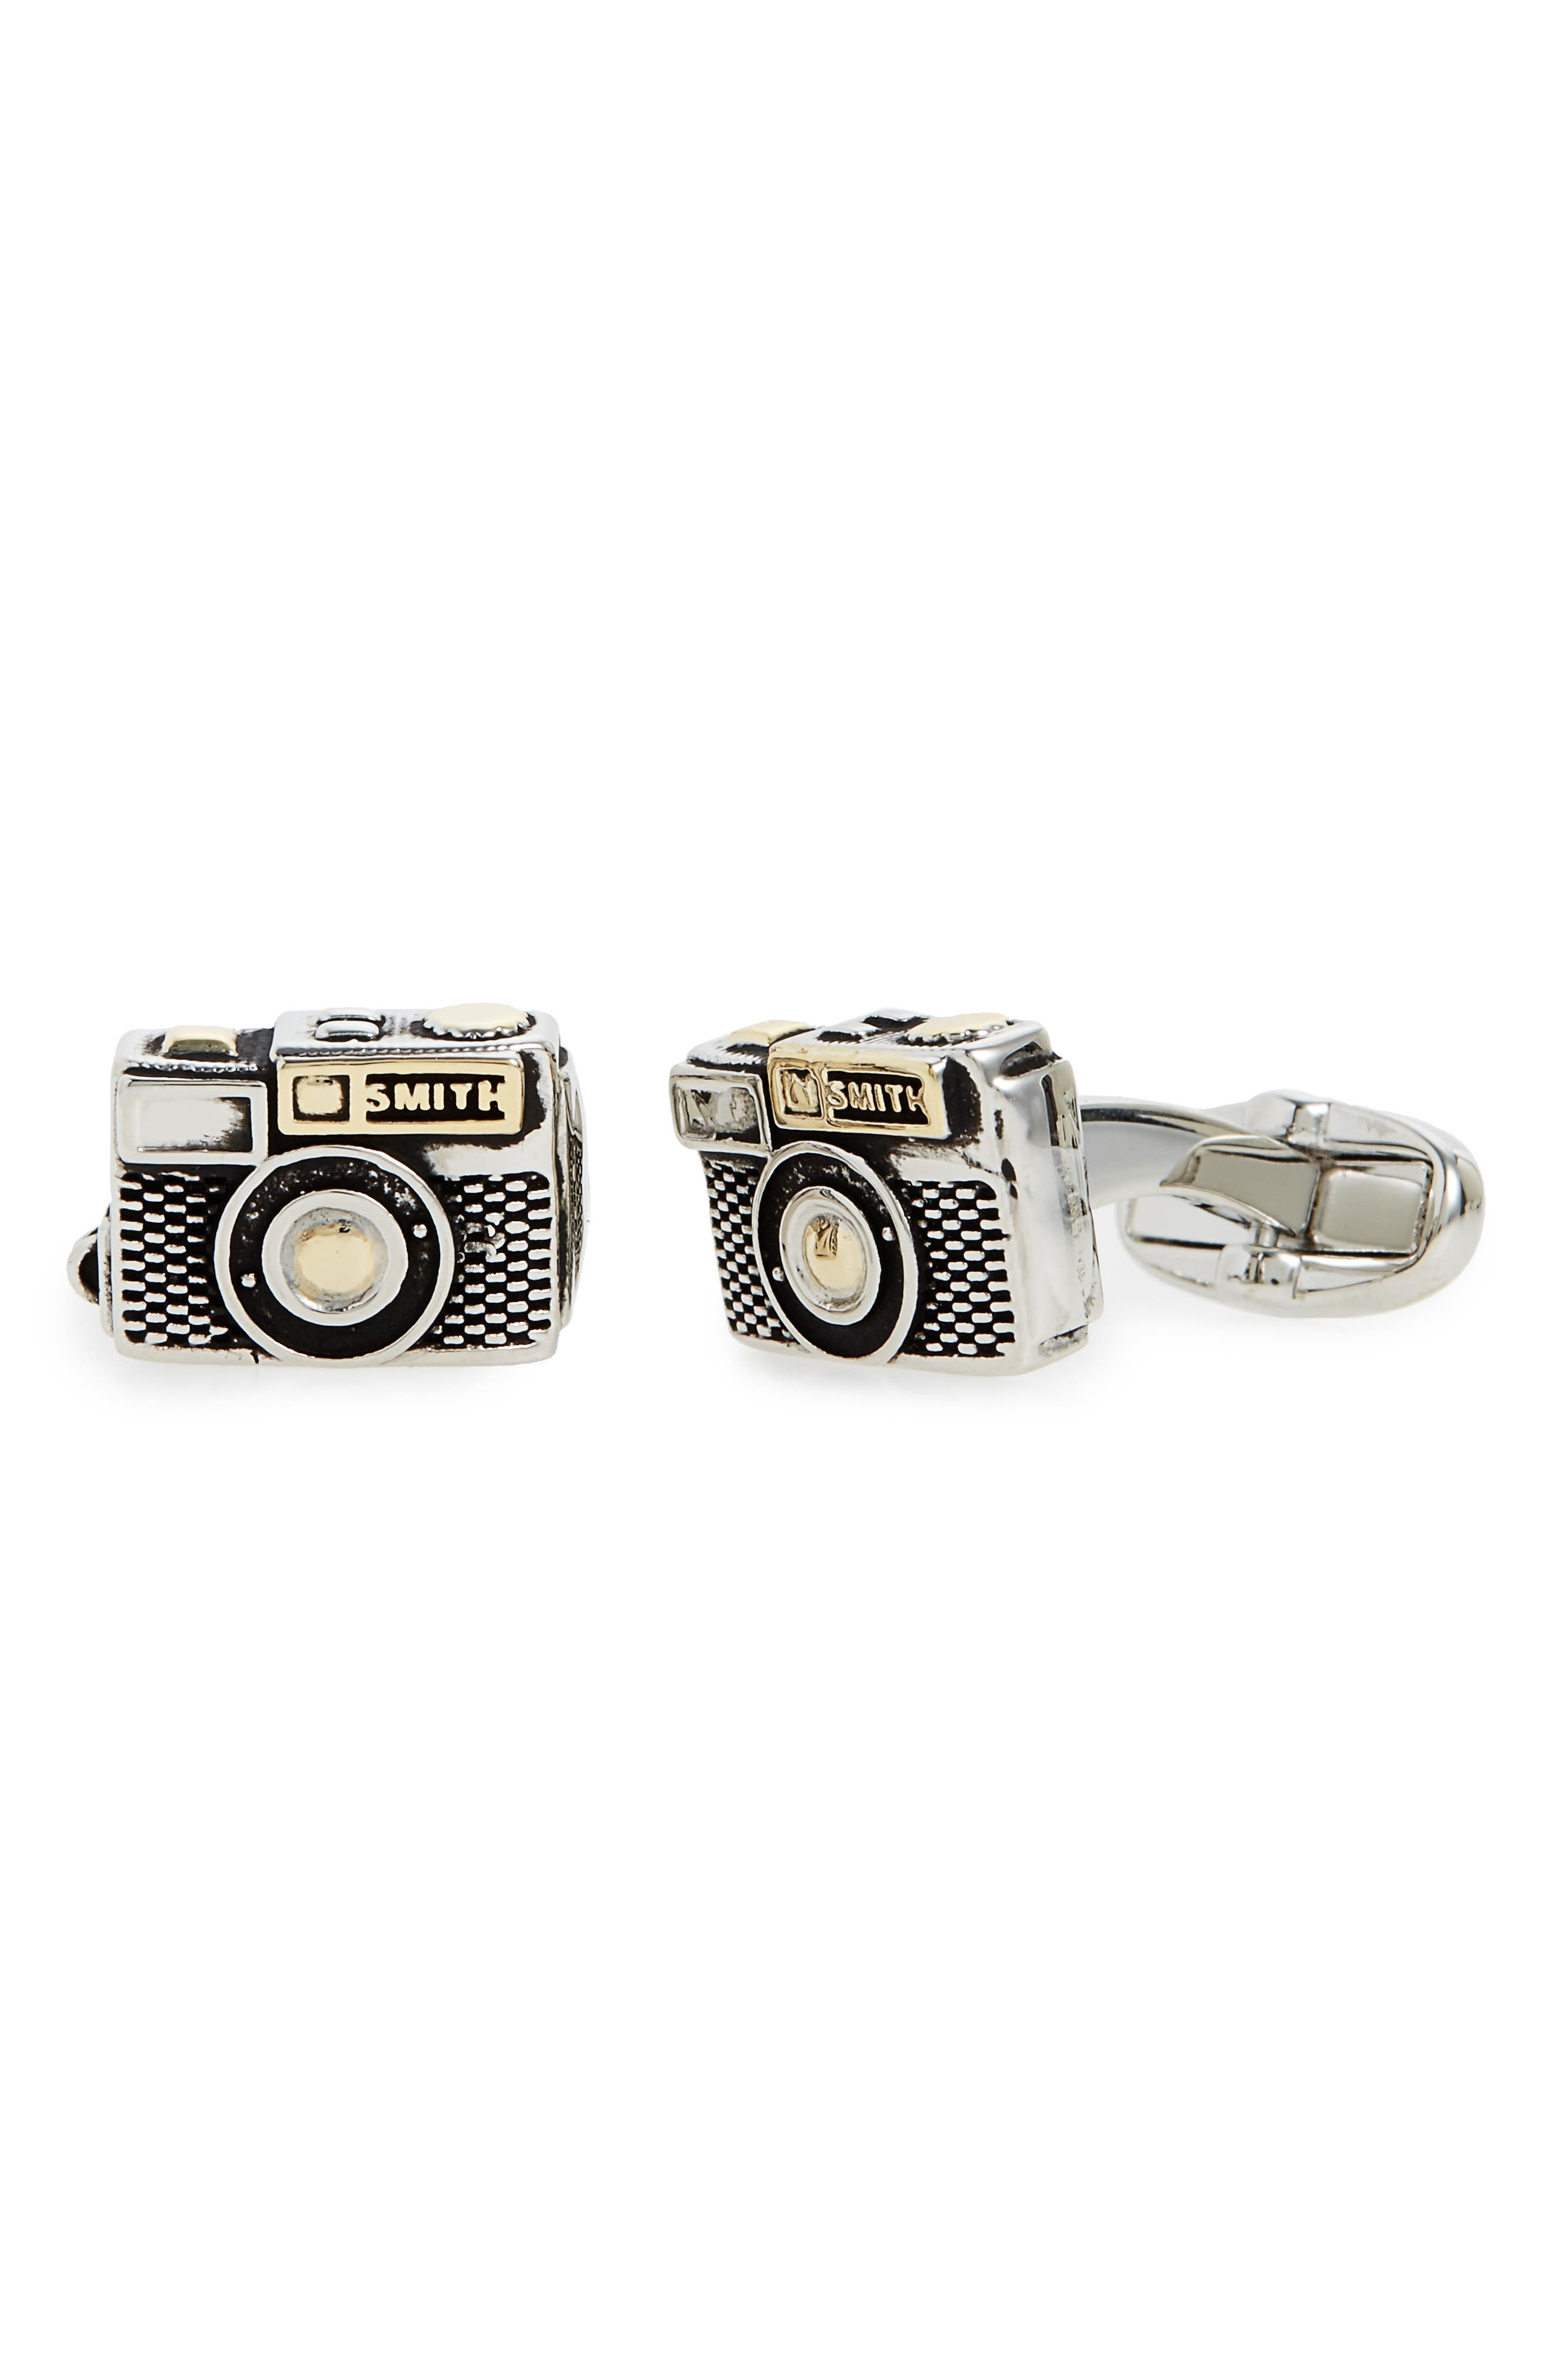 Camera Cuff Links,                             Main thumbnail 1, color,                             040